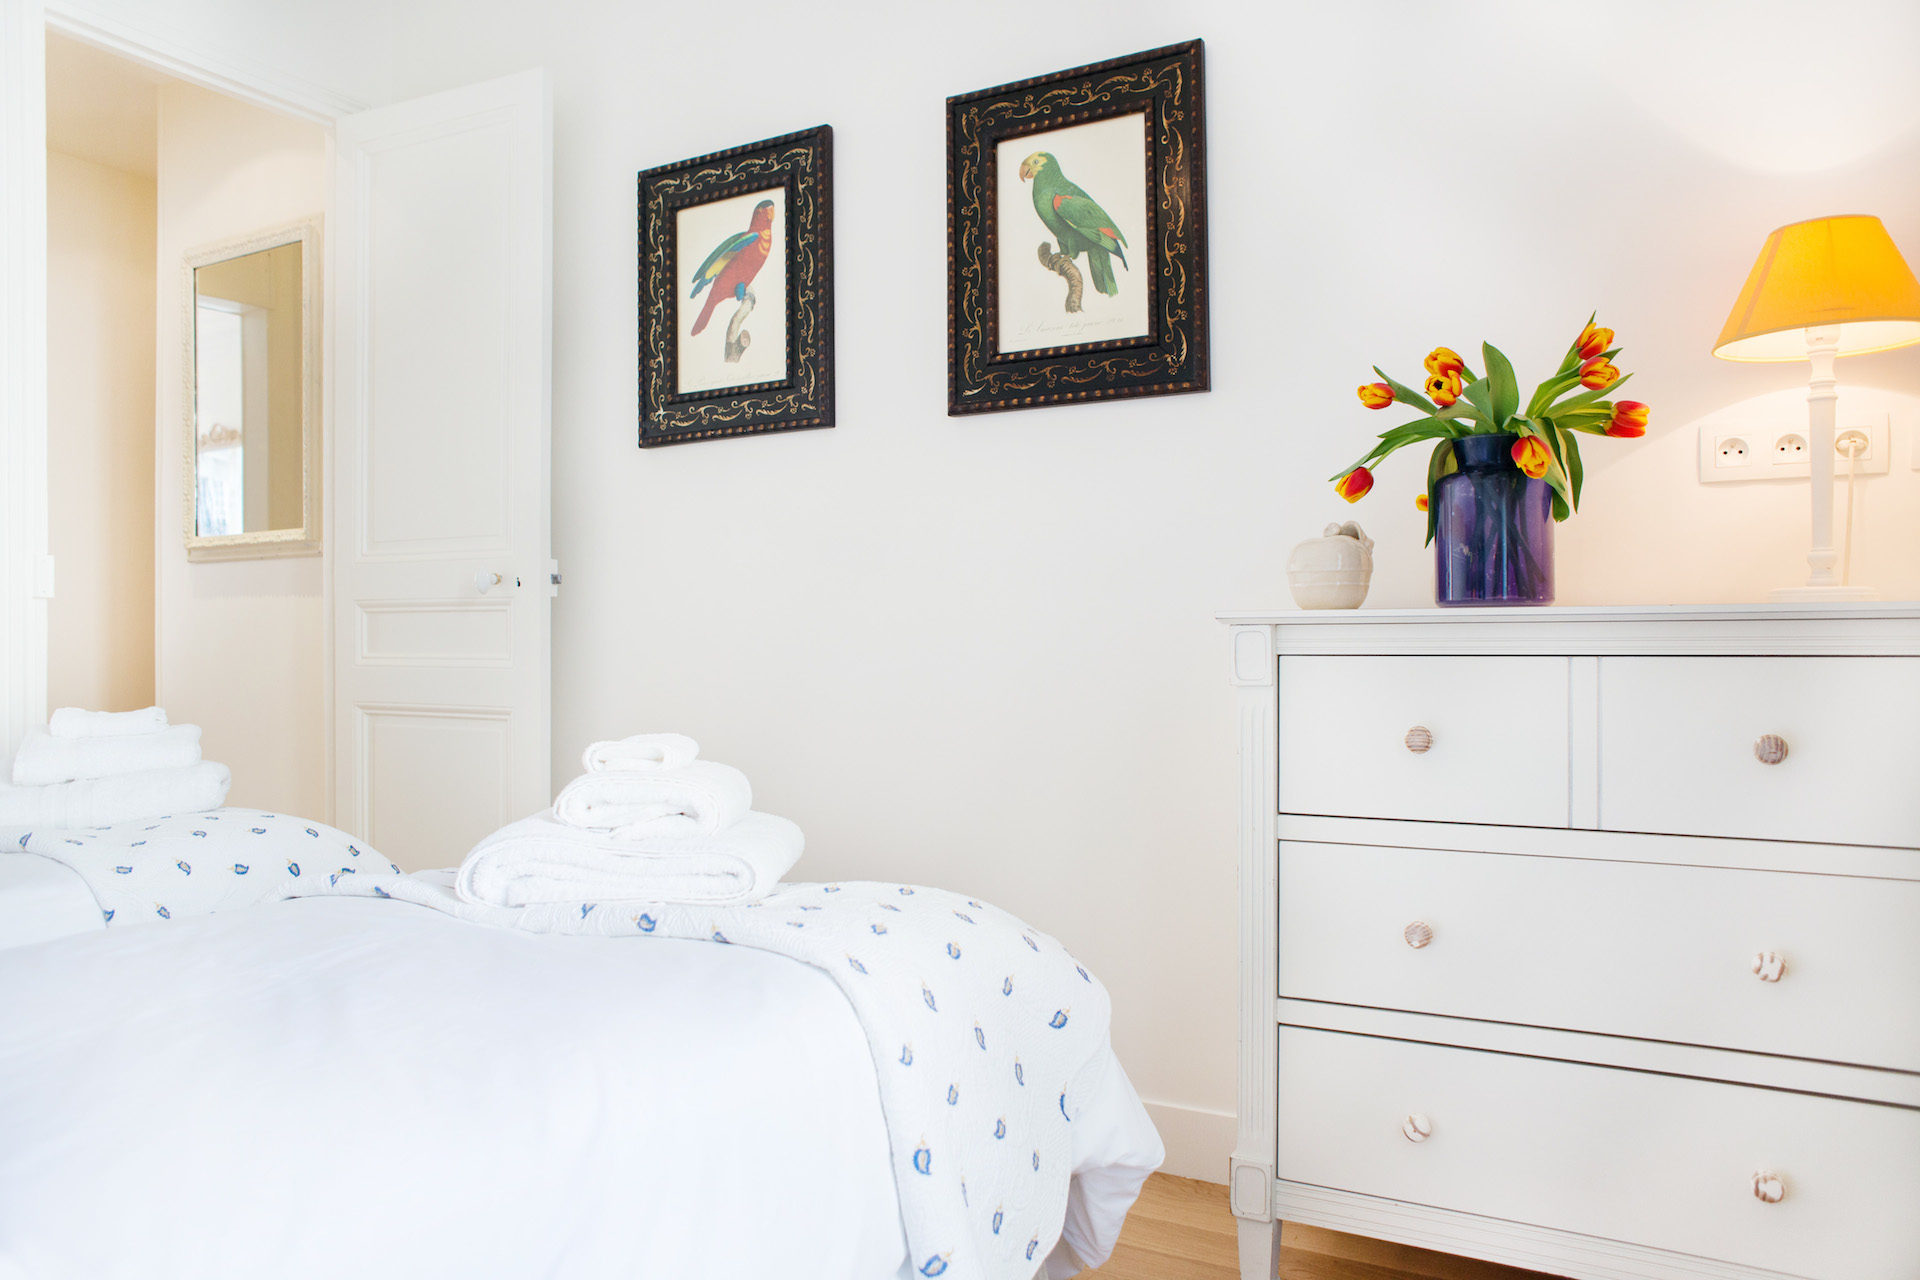 Two single beds in the second bedroom of the Vougeot vacation rental offered by Paris Perfect